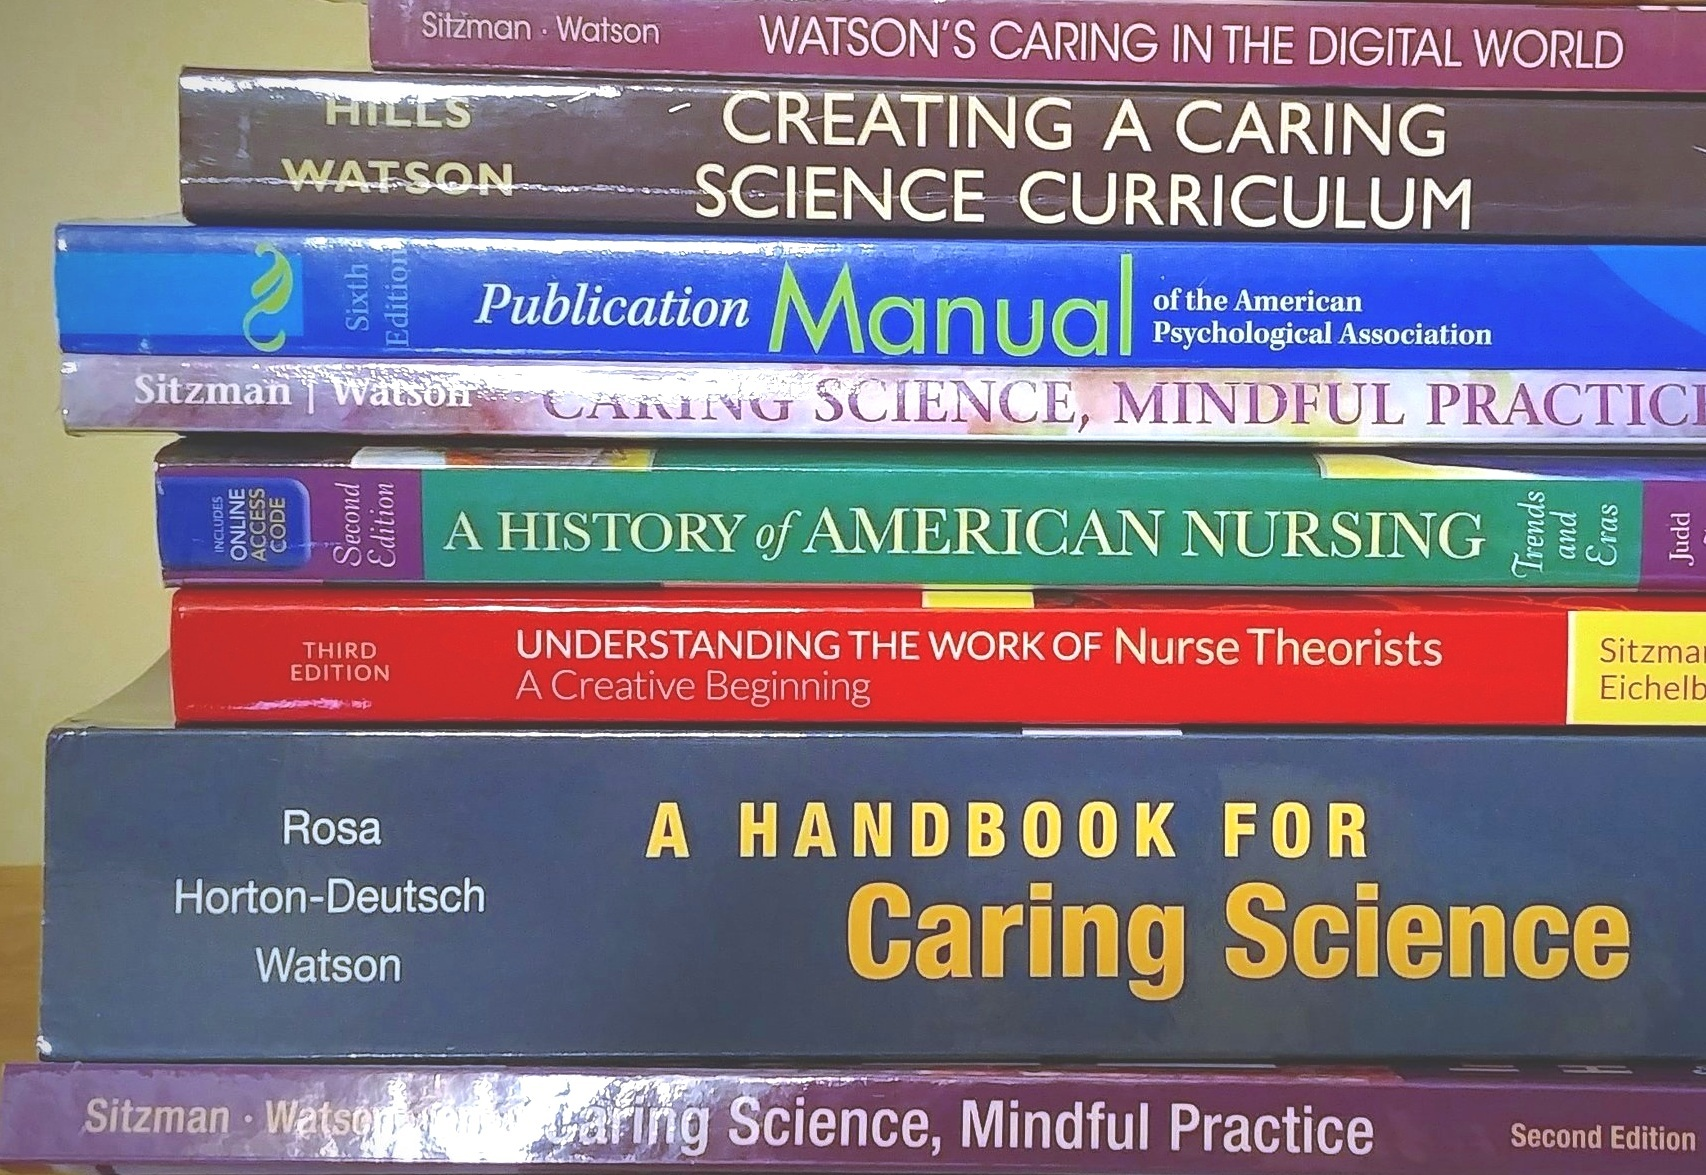 Further Learning - These resources will help deepen your understanding of caring in professional environments and beyond.LEARN MORE